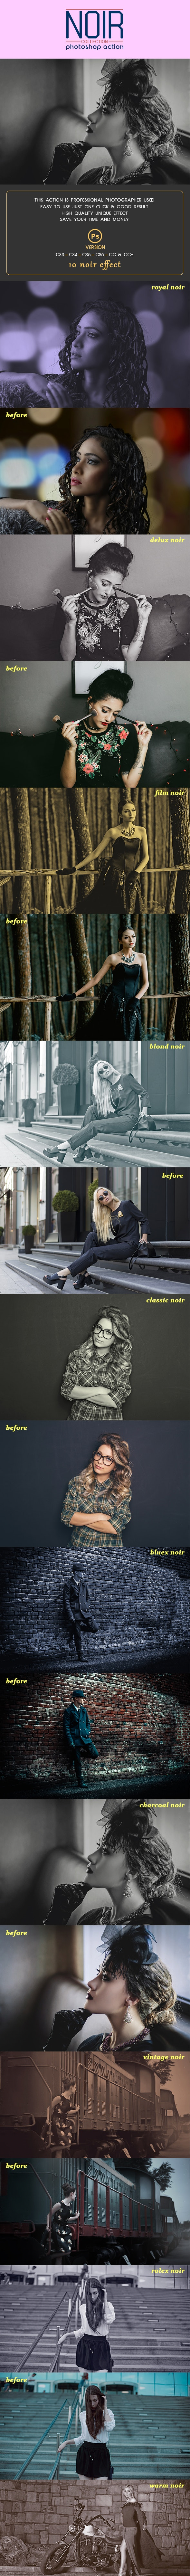 10 Noir Collection Photoshop Action - Photo Effects Actions